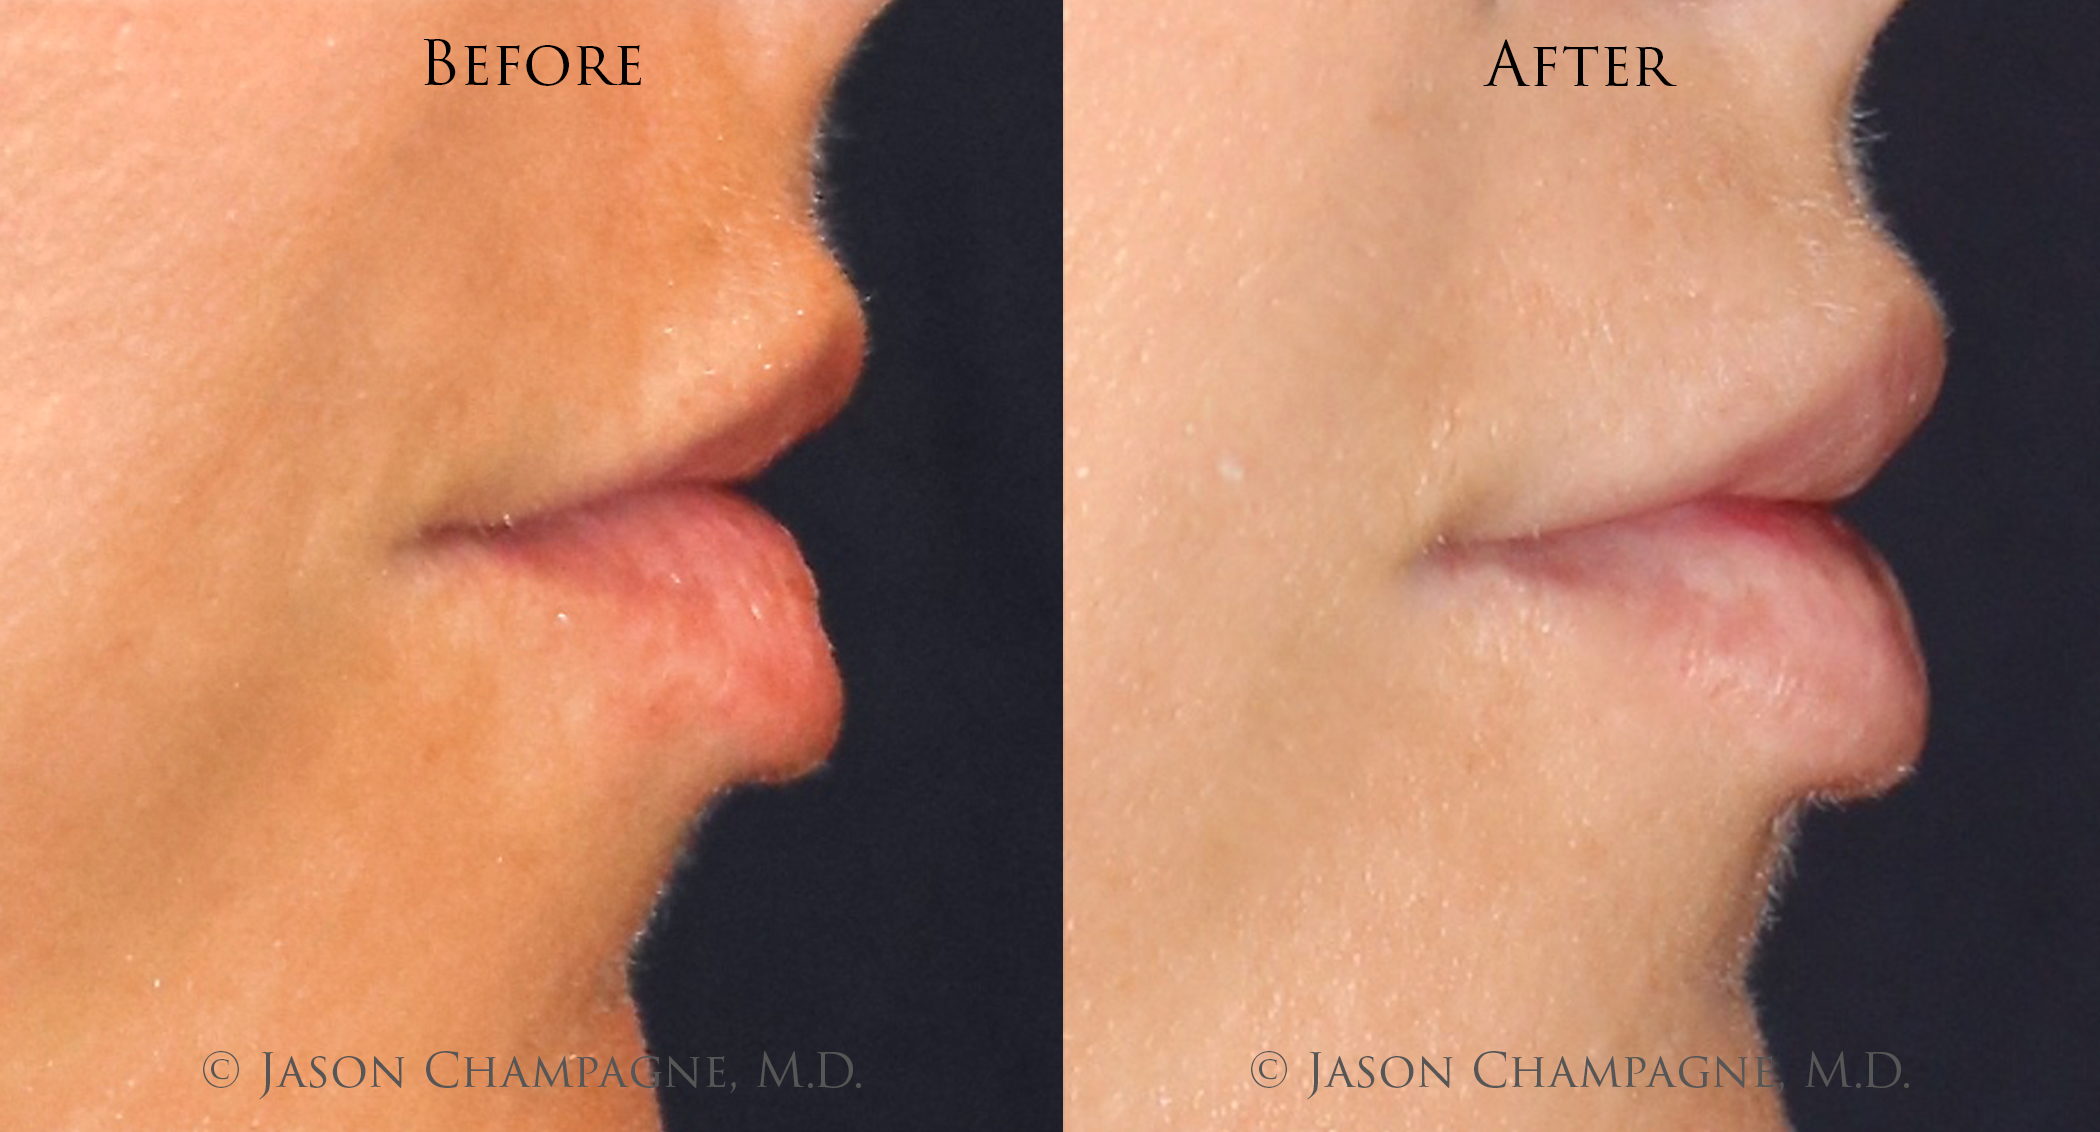 Jason-Champagne-Lip-Augmentation-Before-and-After.png